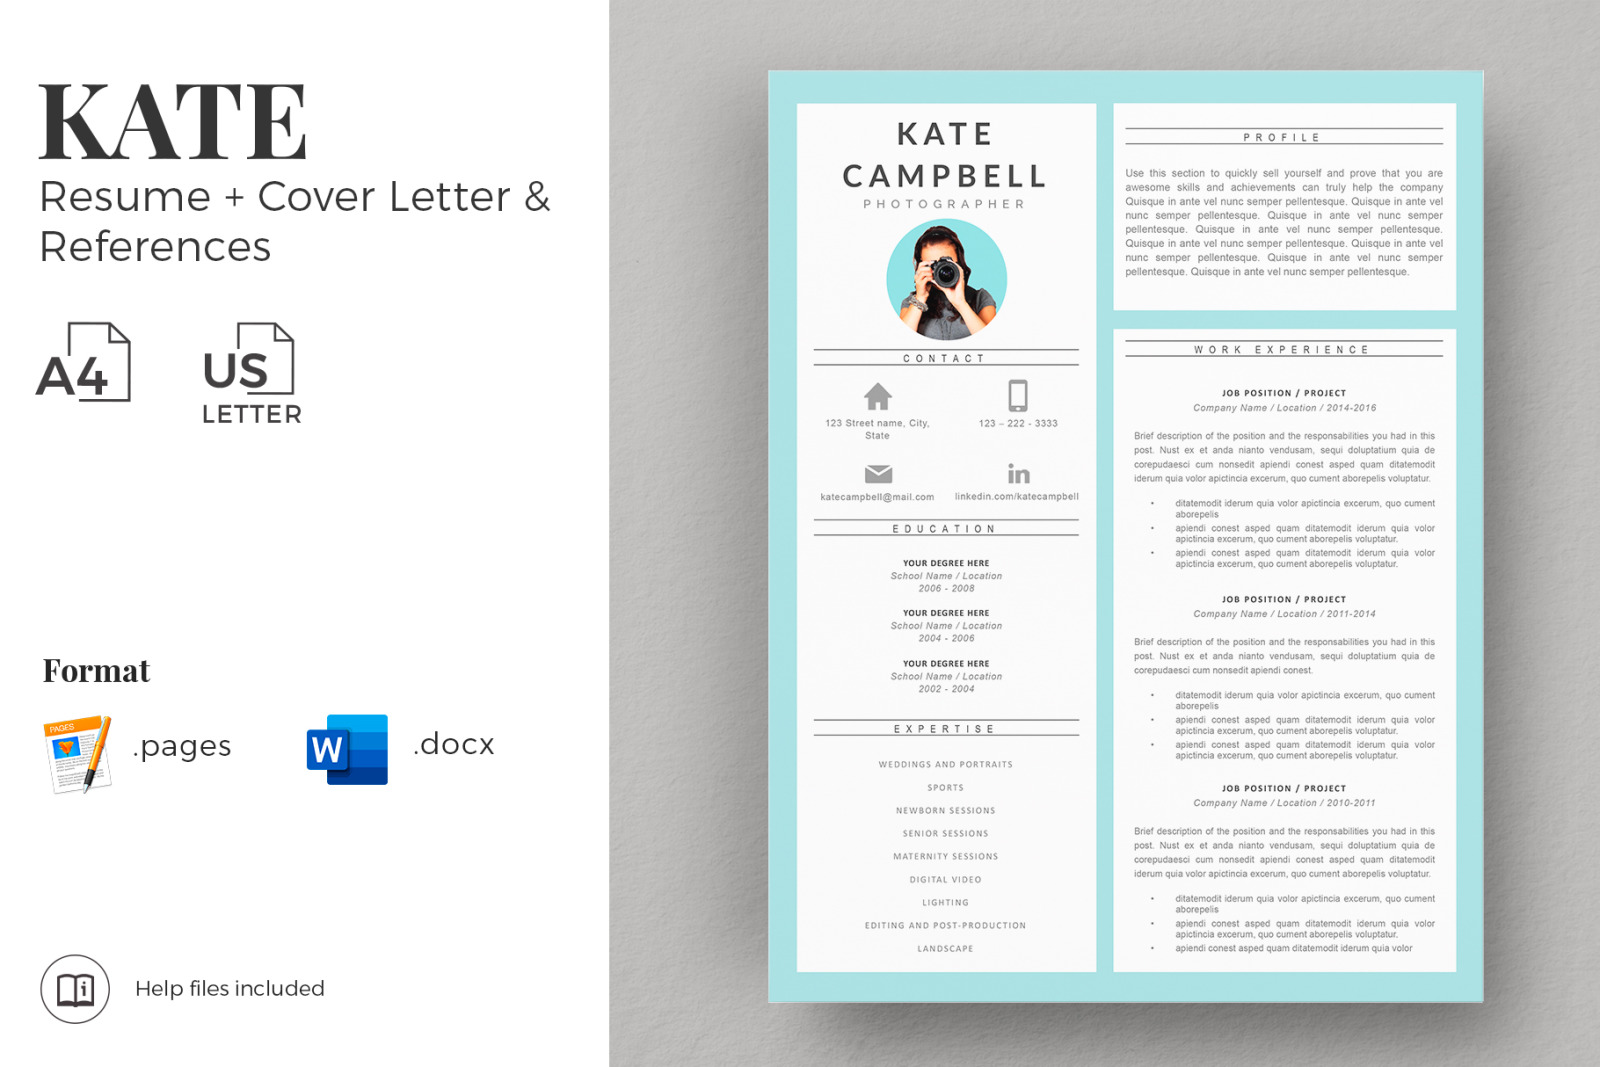 creative resume cv design matching cover letter references free writing guide in Resume Free Matching Cover Letter And Resume Templates